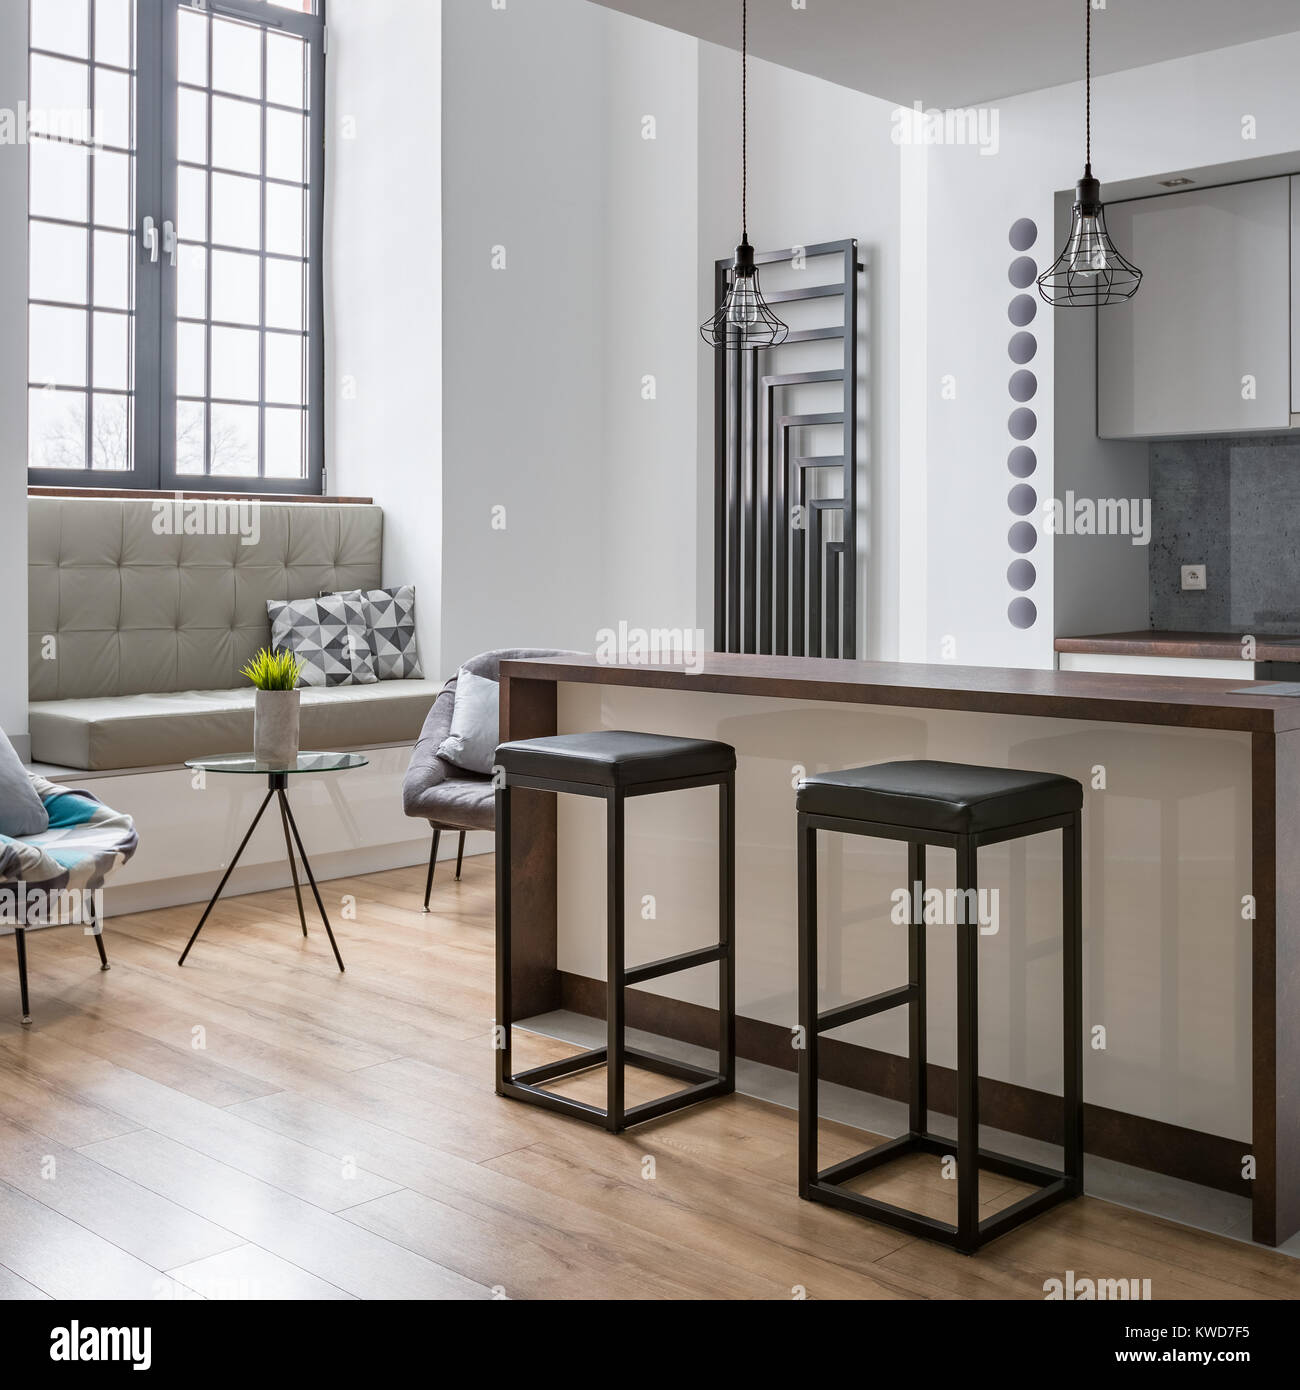 Peachy Interior With Kitchen Island Bar Stools And Modern Lamps Machost Co Dining Chair Design Ideas Machostcouk